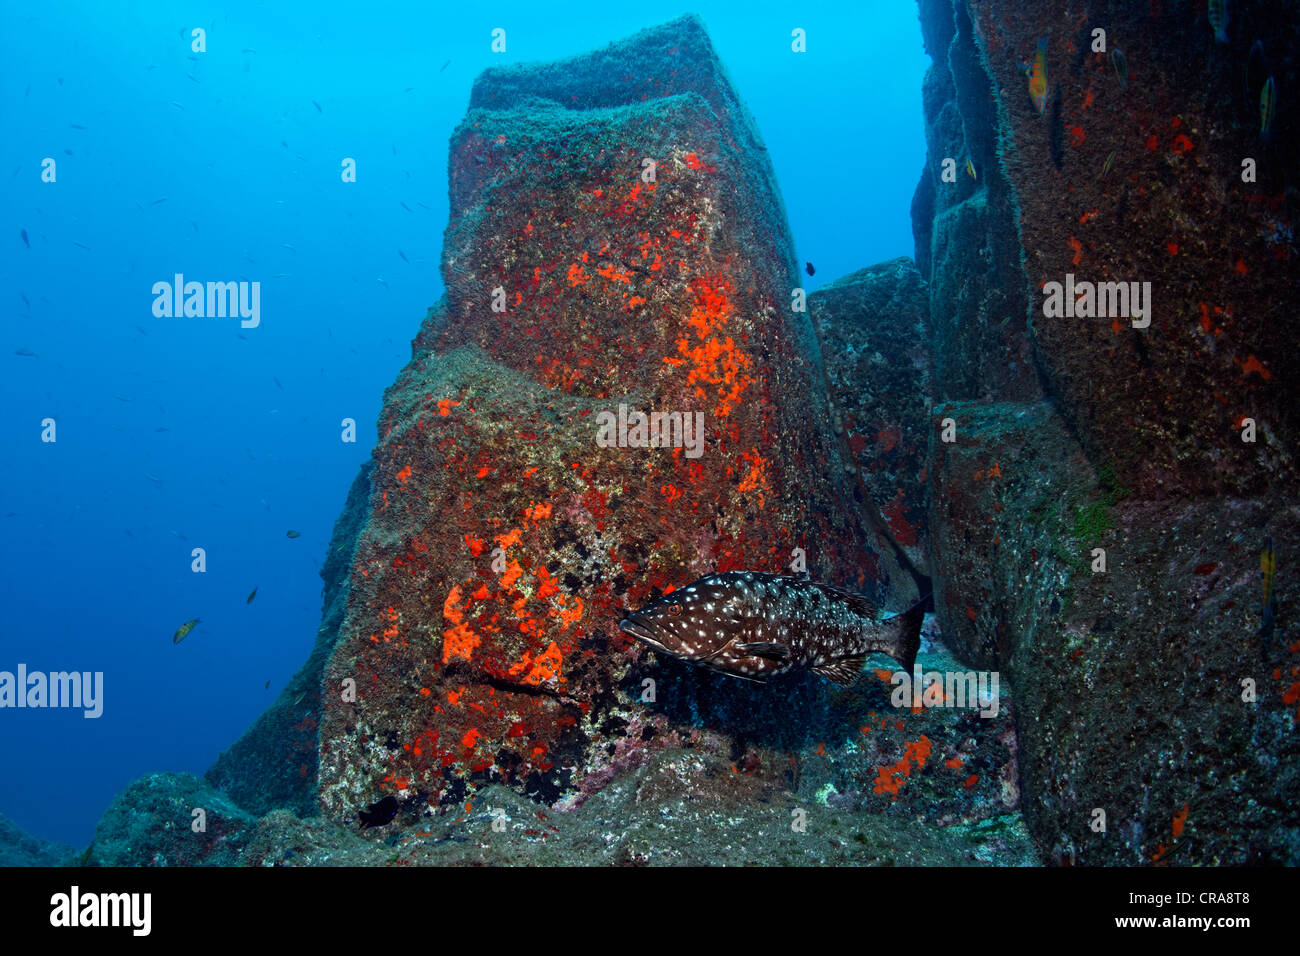 Comb Grouper (Mycteroperca fusca) in front of rocks with Red Sponge (Spirastrella cunctatrix), Madeira, Portugal, - Stock Image